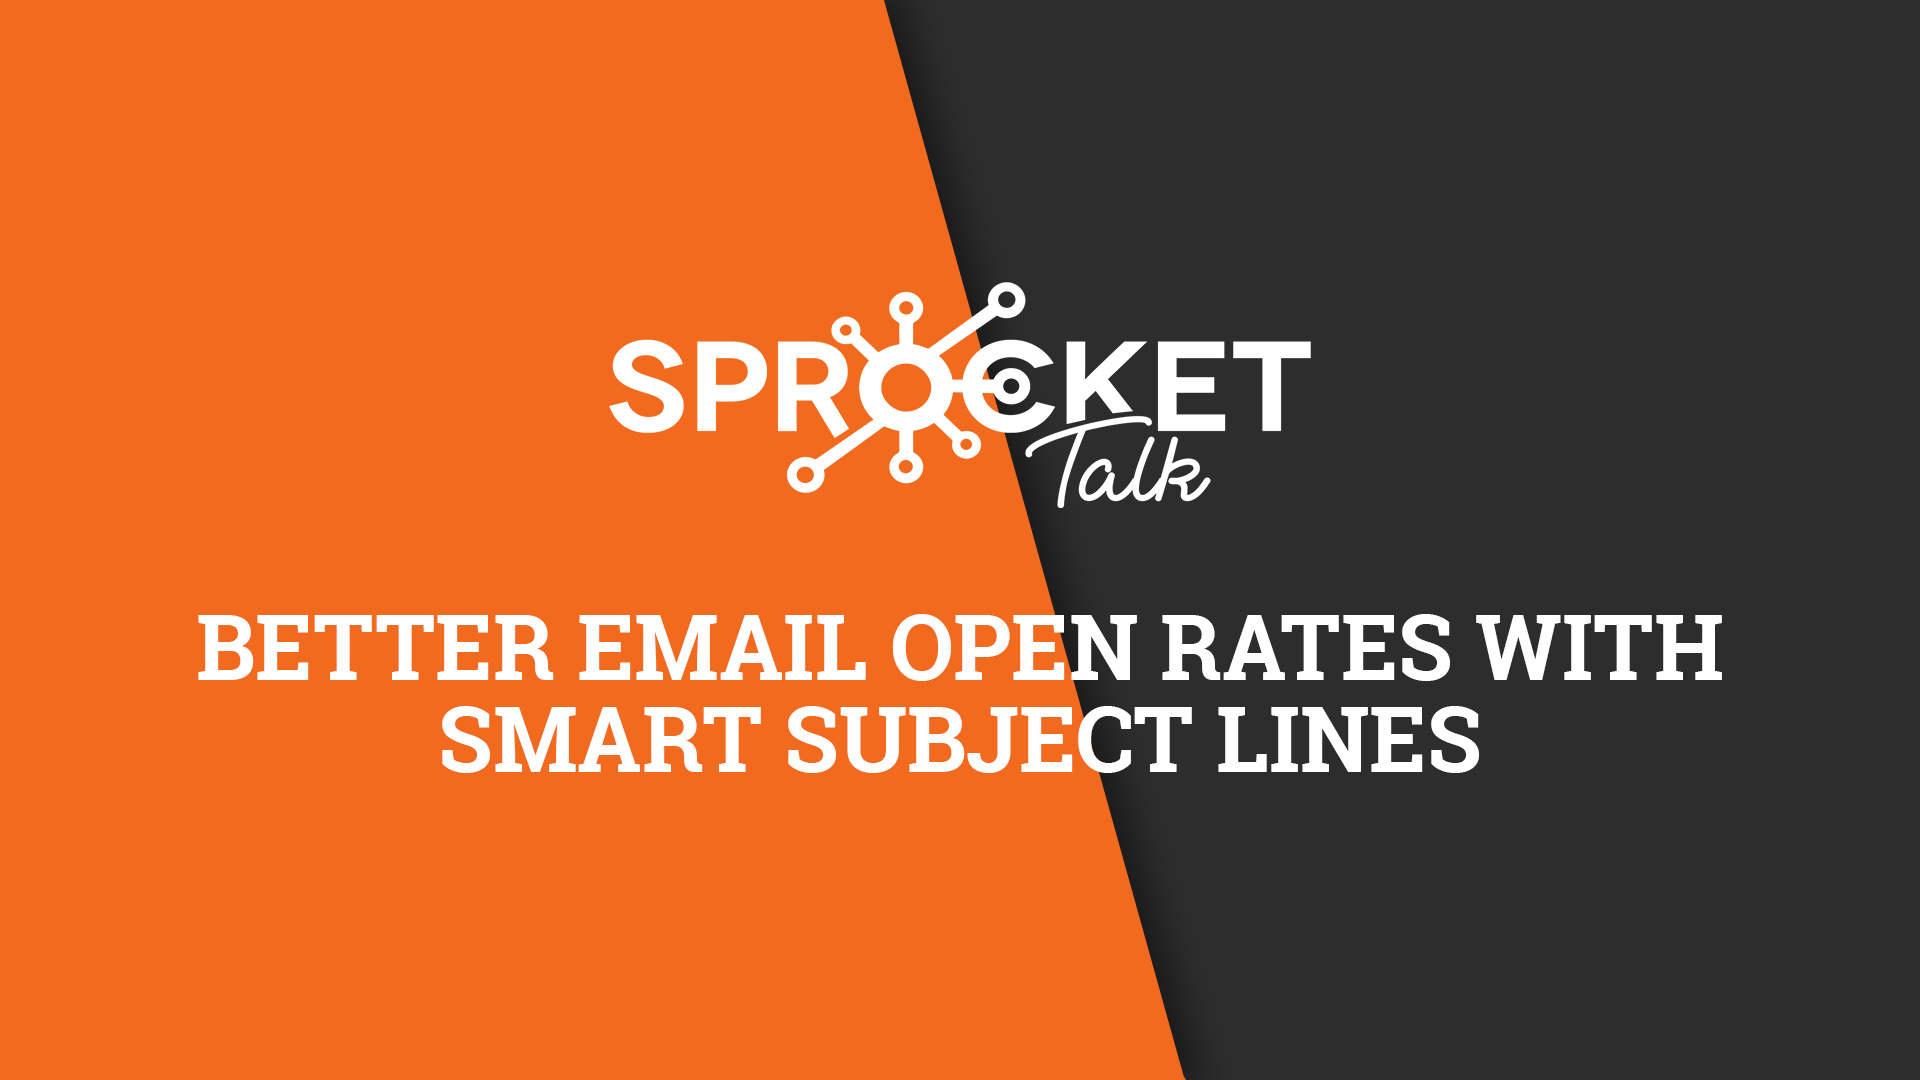 Better Email Open Rates With SMART Subject Lines